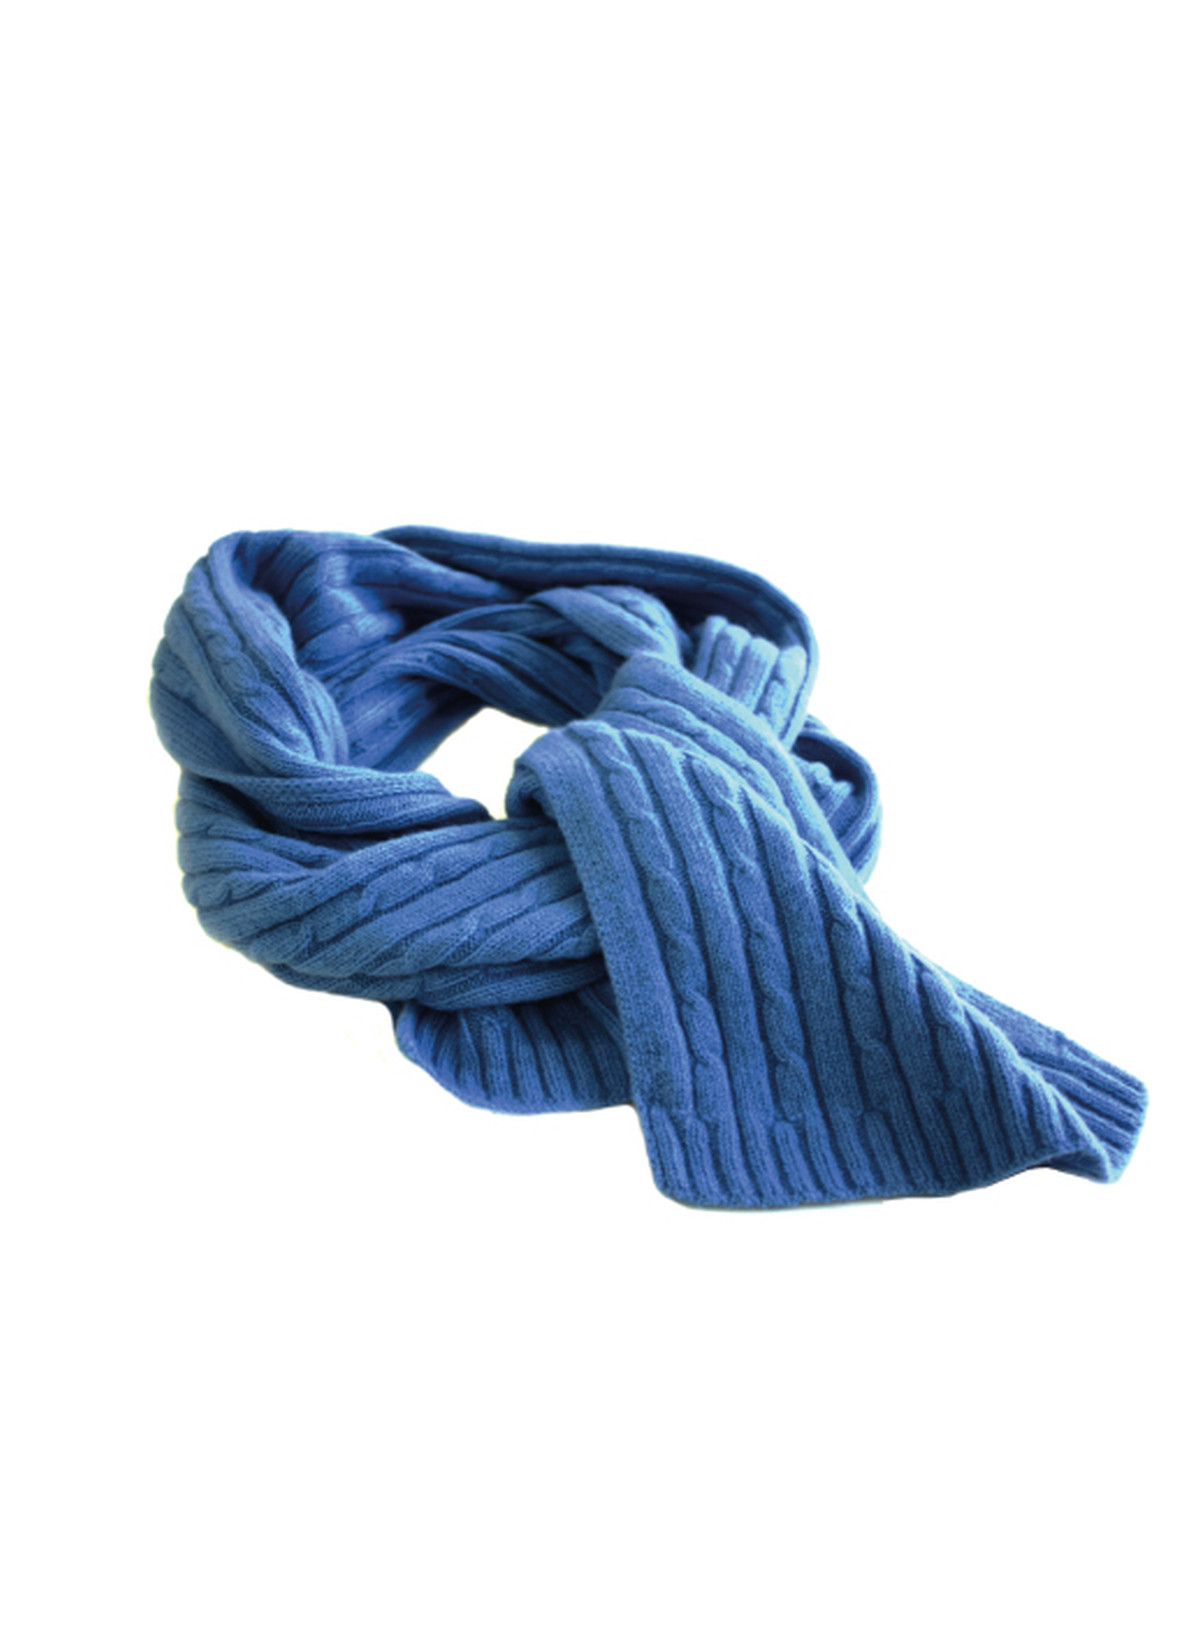 New Cashmere Knitted Cable Scarf In Blue – Sinclair Duncan Cable Scarf Of Innovative 49 Ideas Cable Scarf